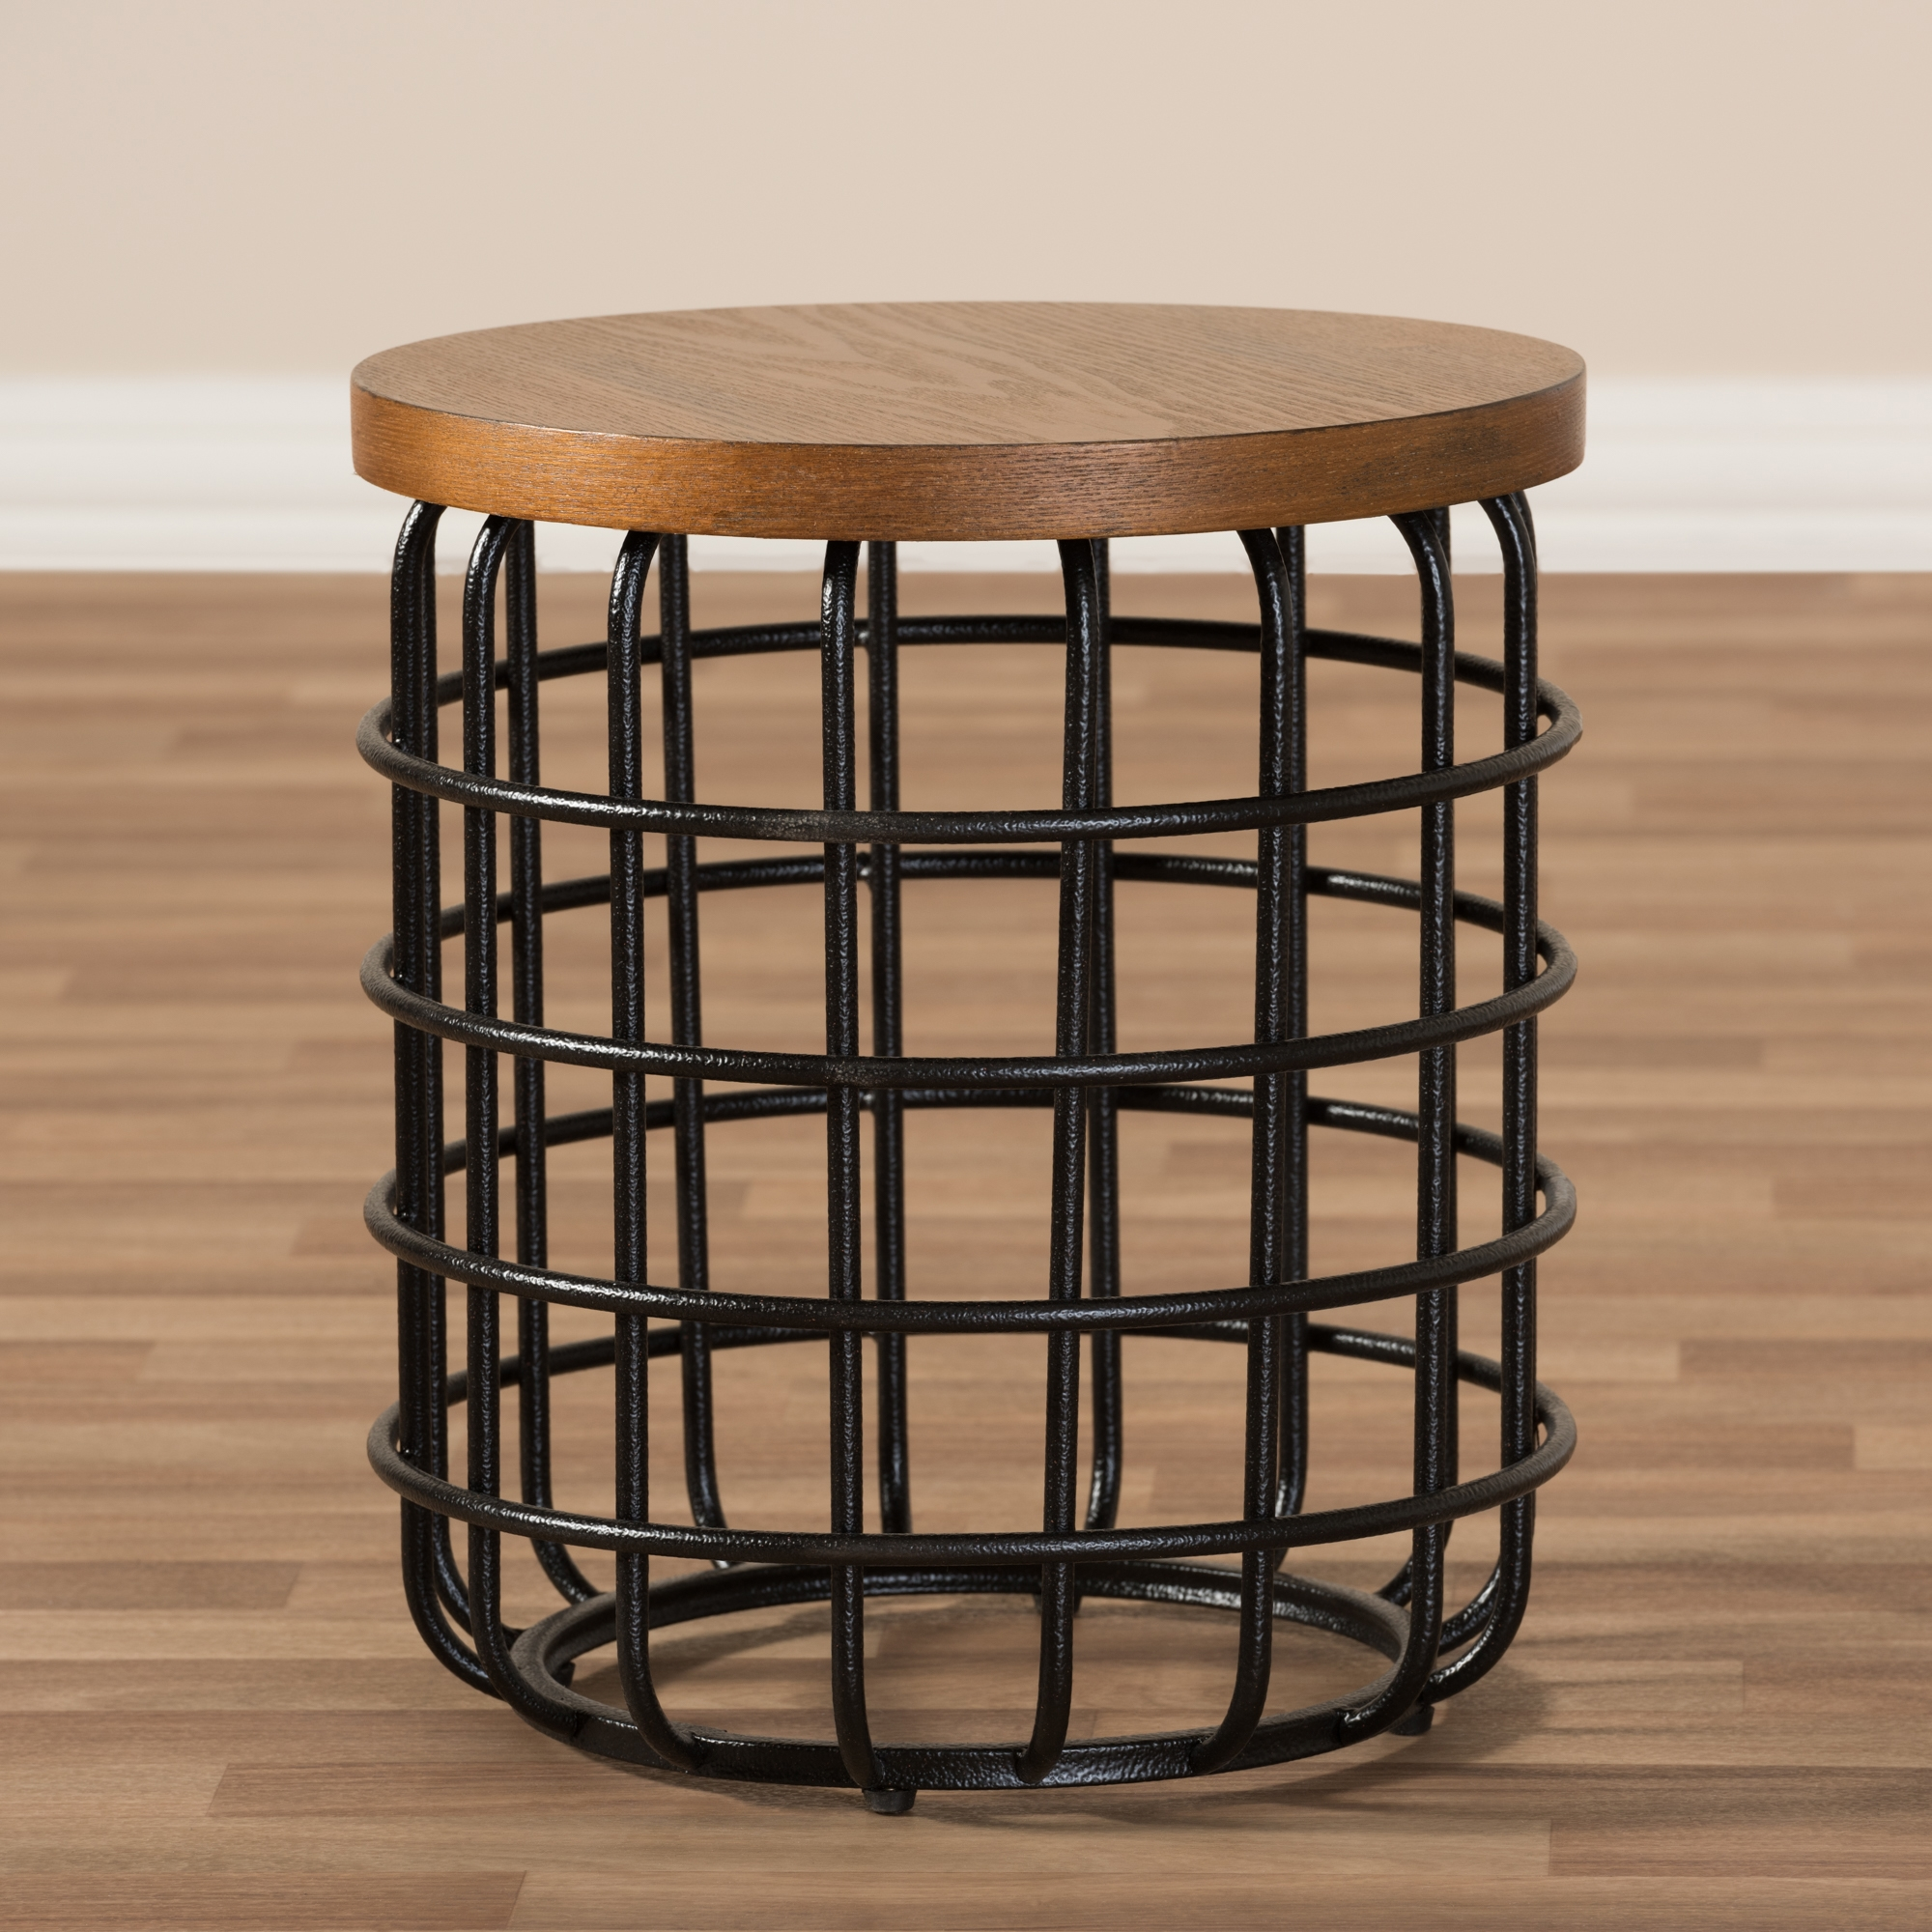 ... Baxton Studio Carie Rustic Industrial Style Antique Black Textured  Finished Metal Distressed Wood Accent Table